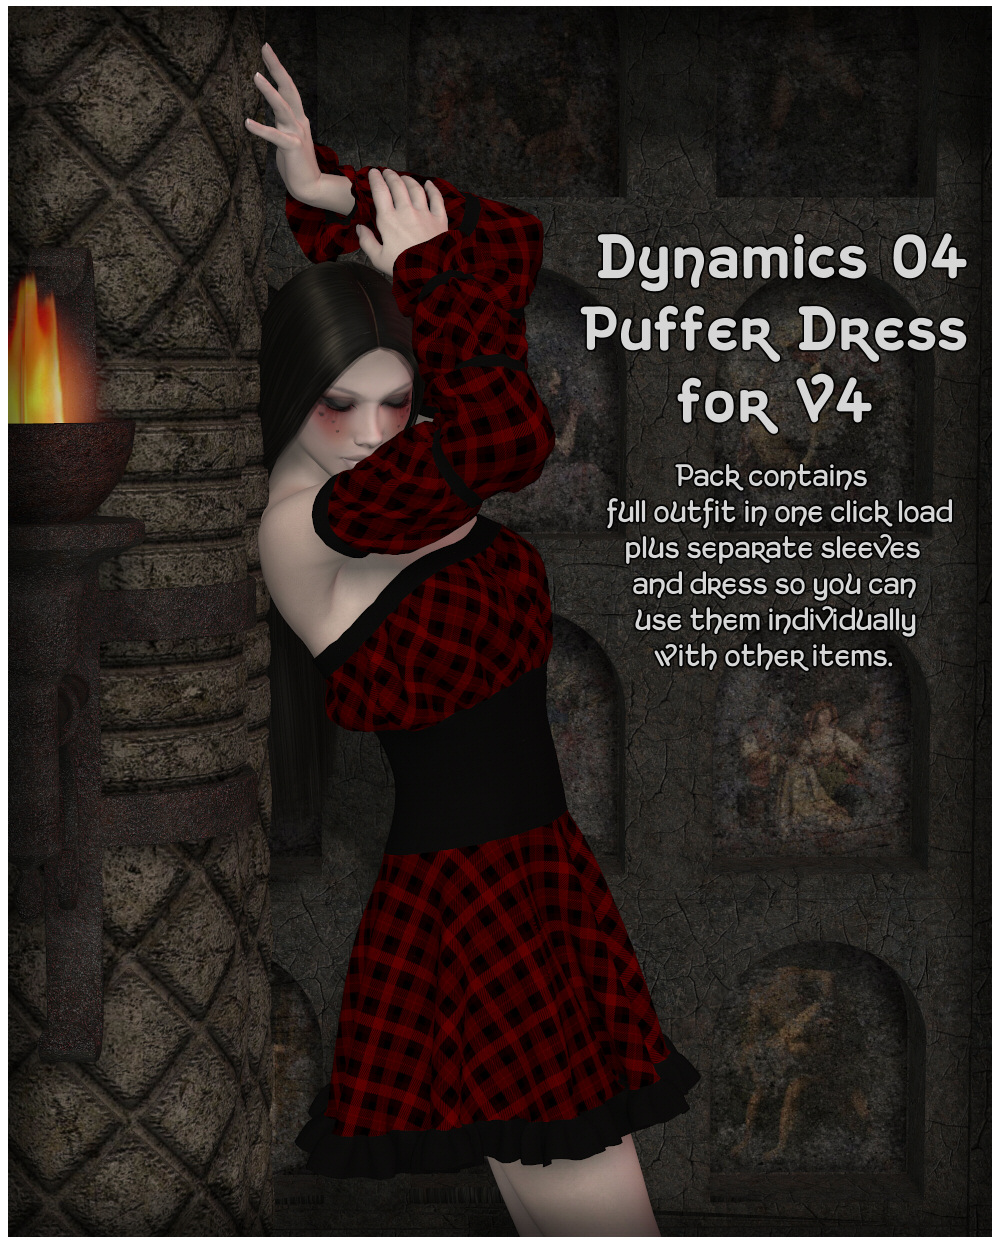 Dynamics 04 - Puffer Dress for V4 by Lully